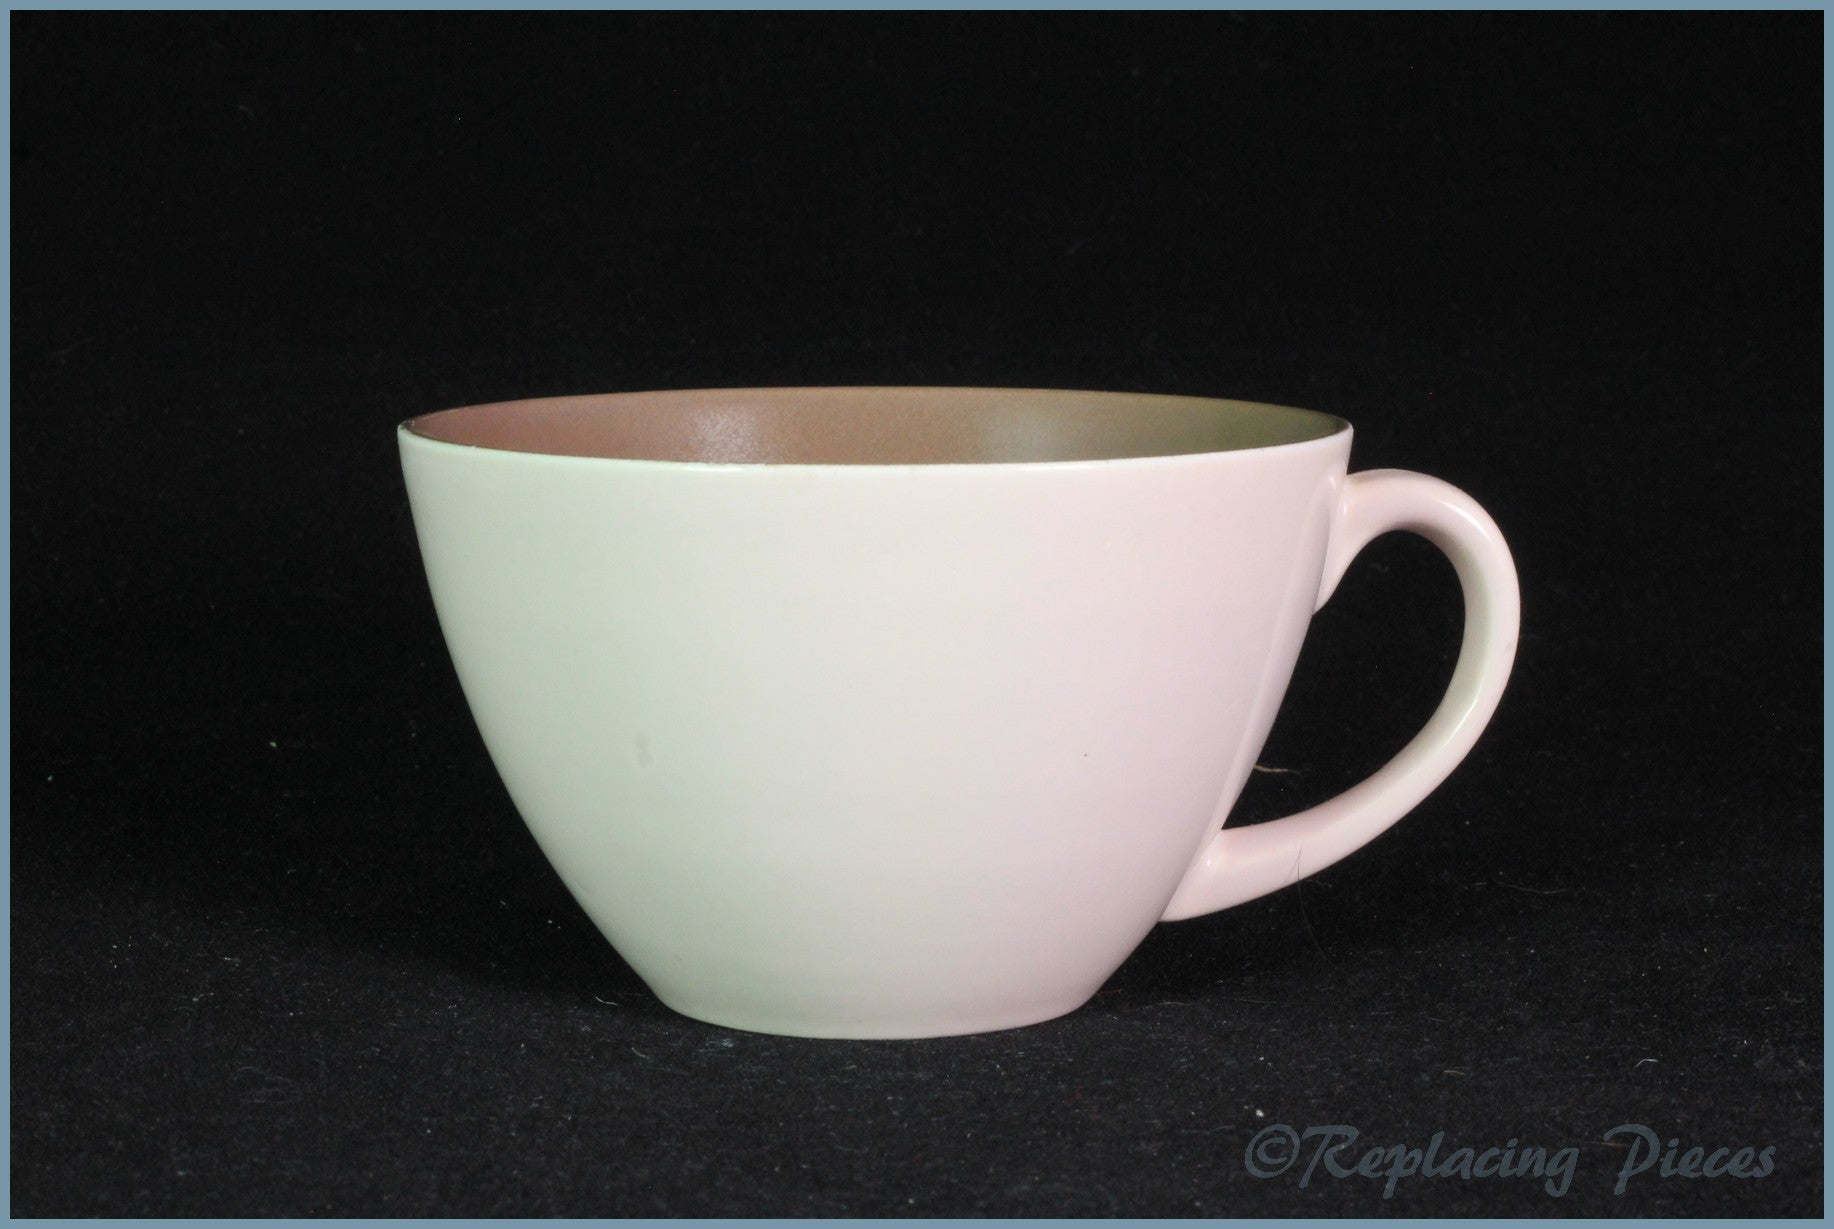 Poole - Mushroom & Sepia - Teacup (Low)